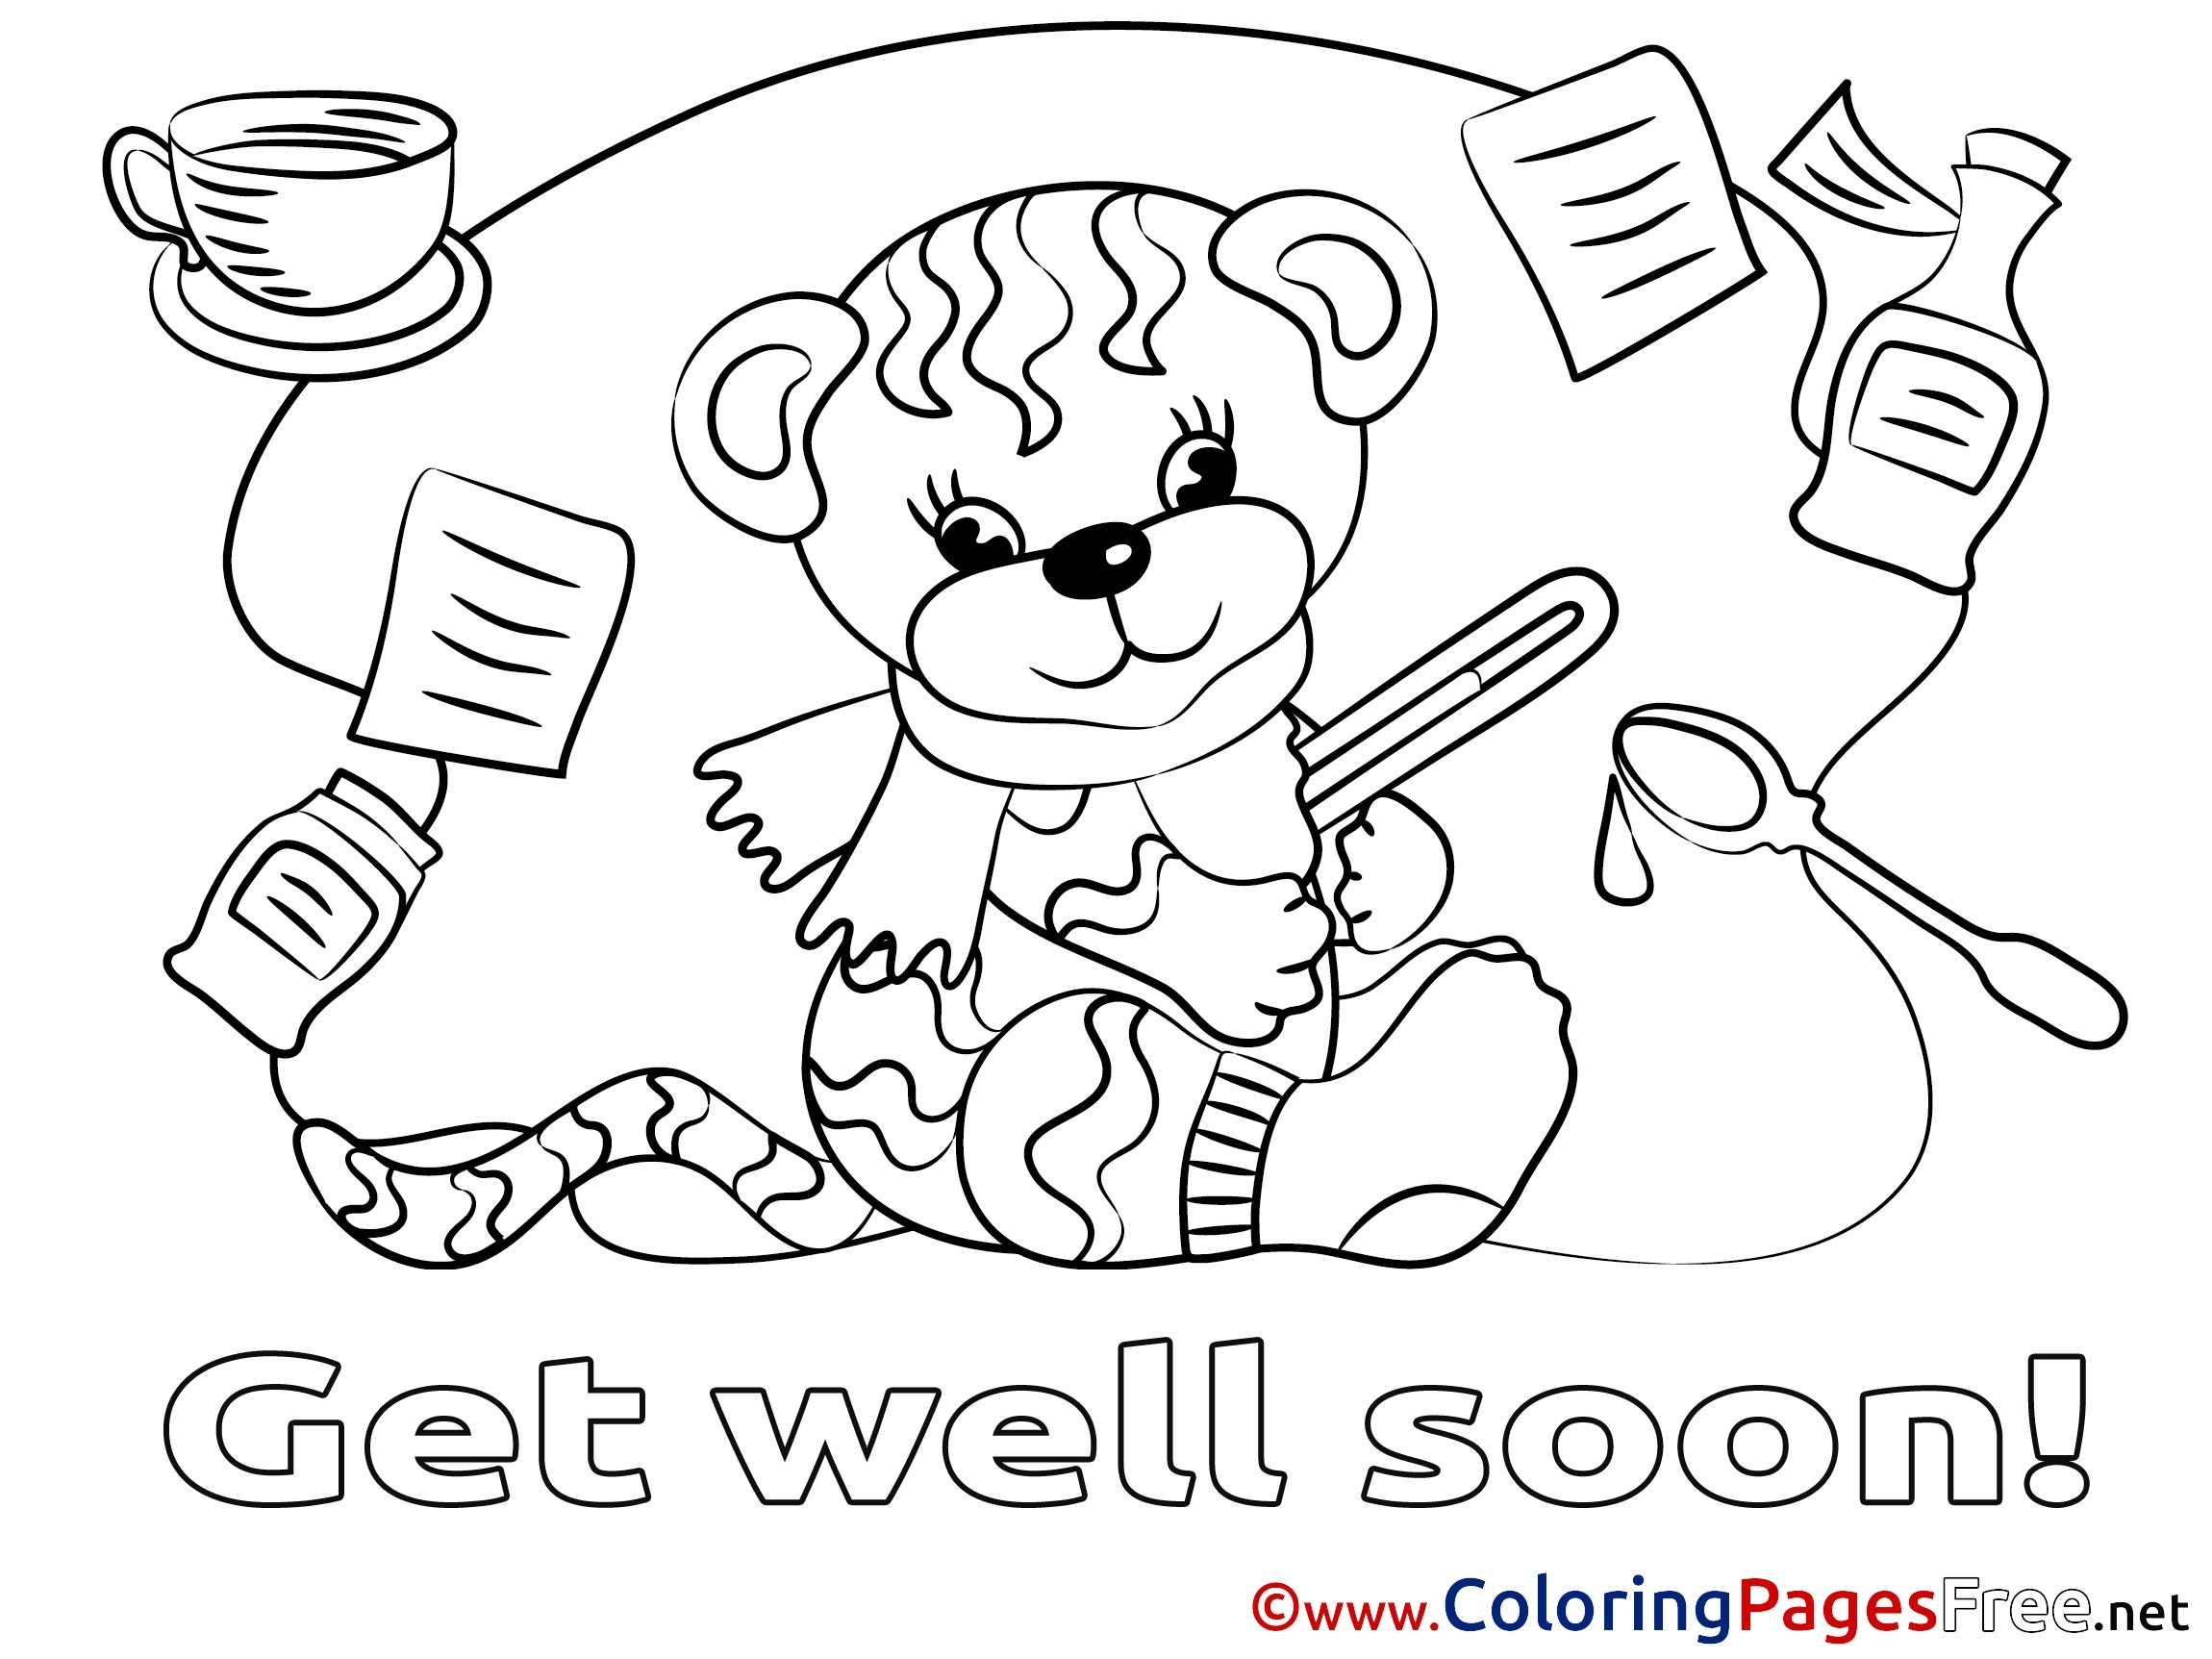 Get Well Soon Coloring Pages At Getcolorings